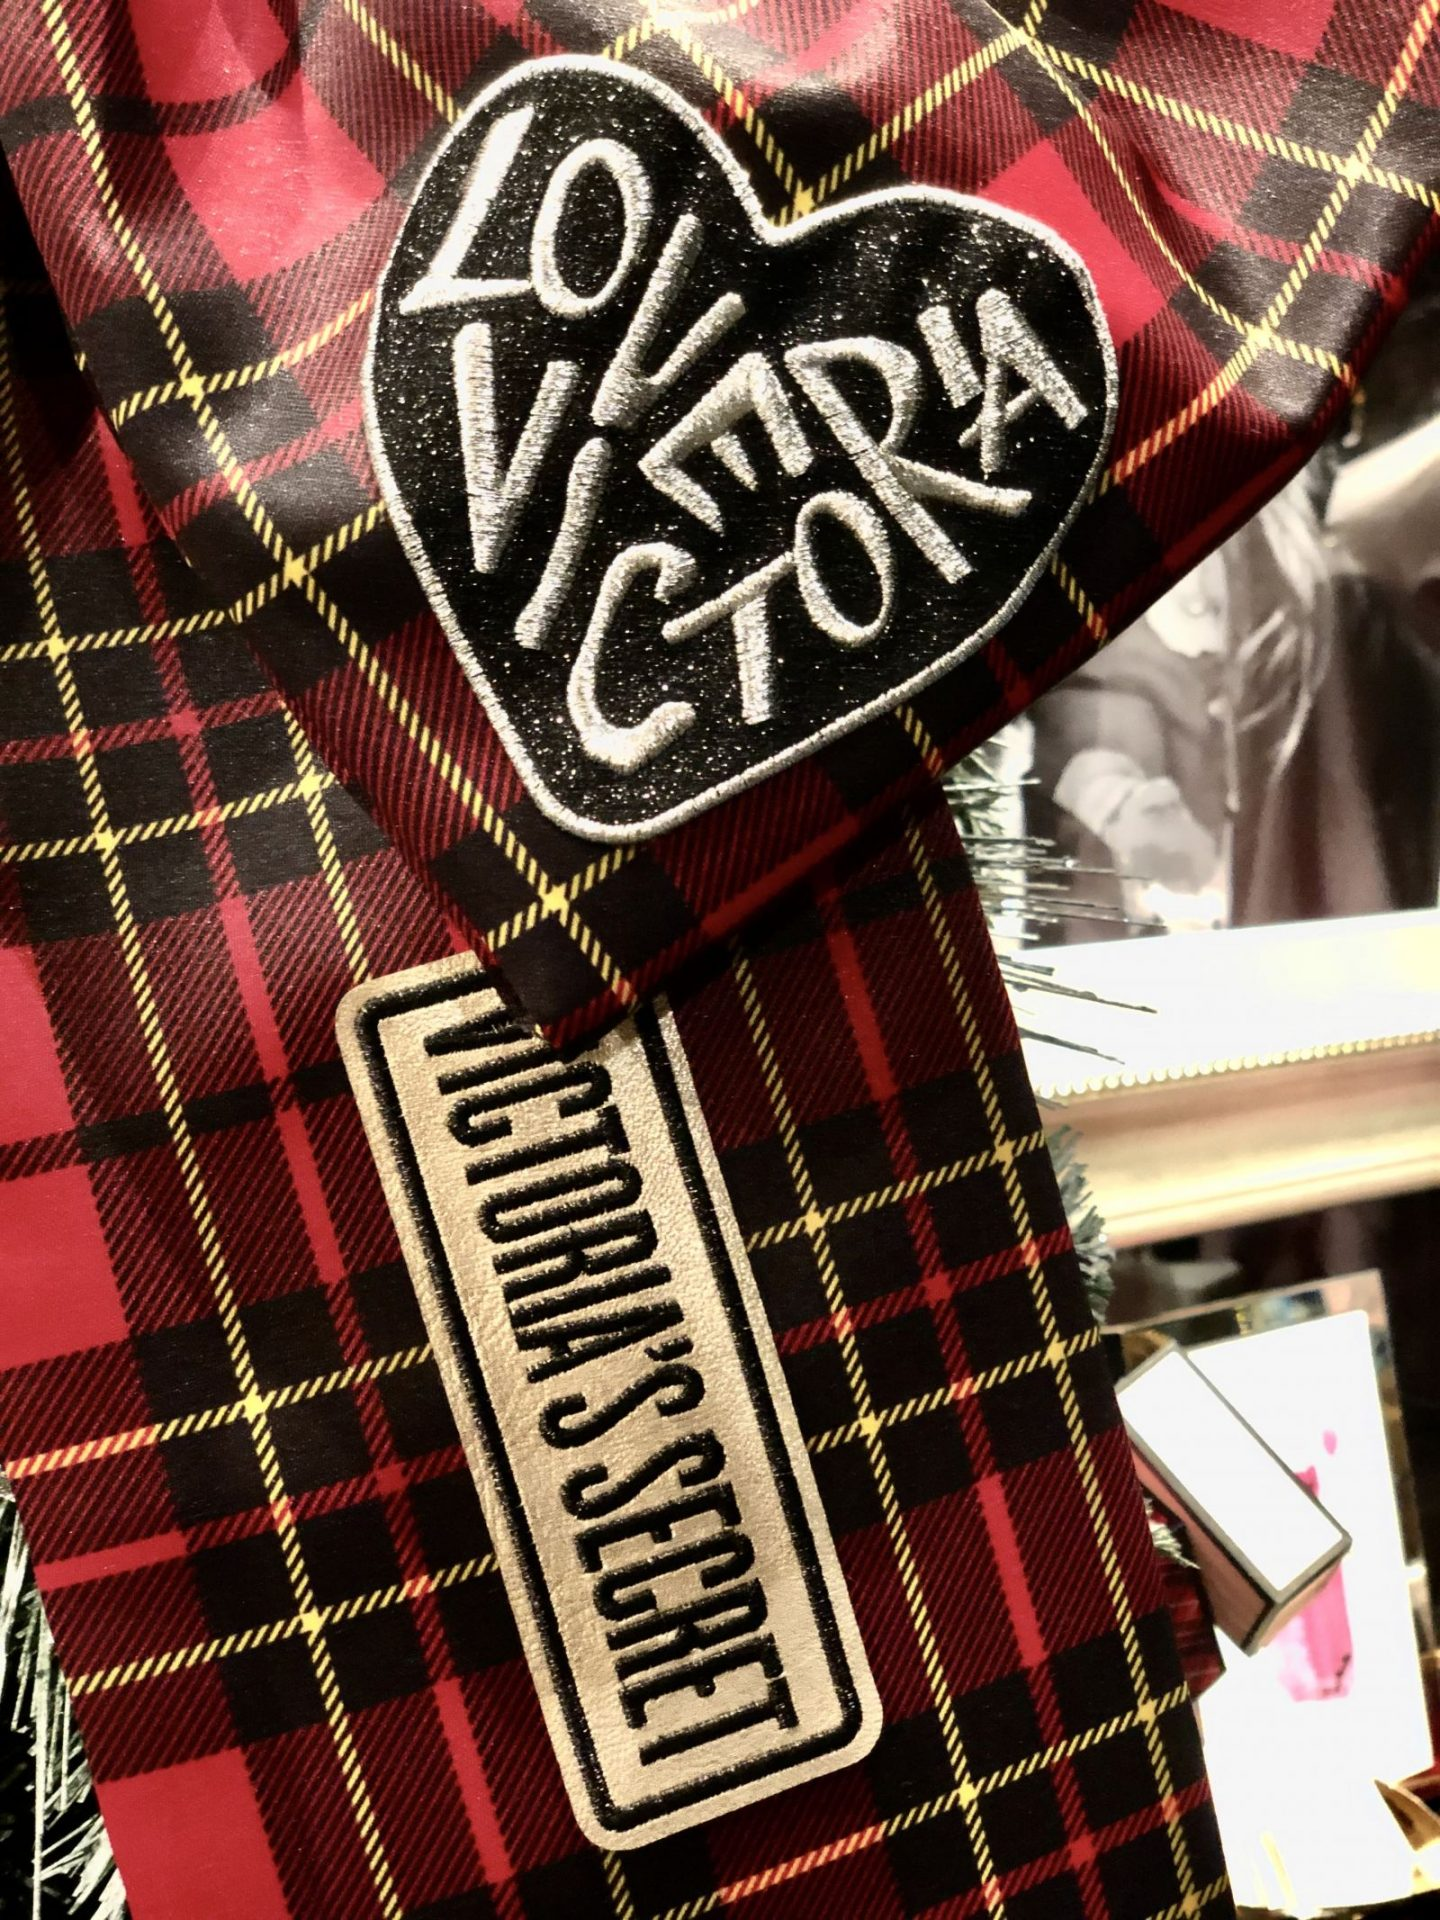 Victoria's Secret Tartan Ribbons Intu Metrocentre